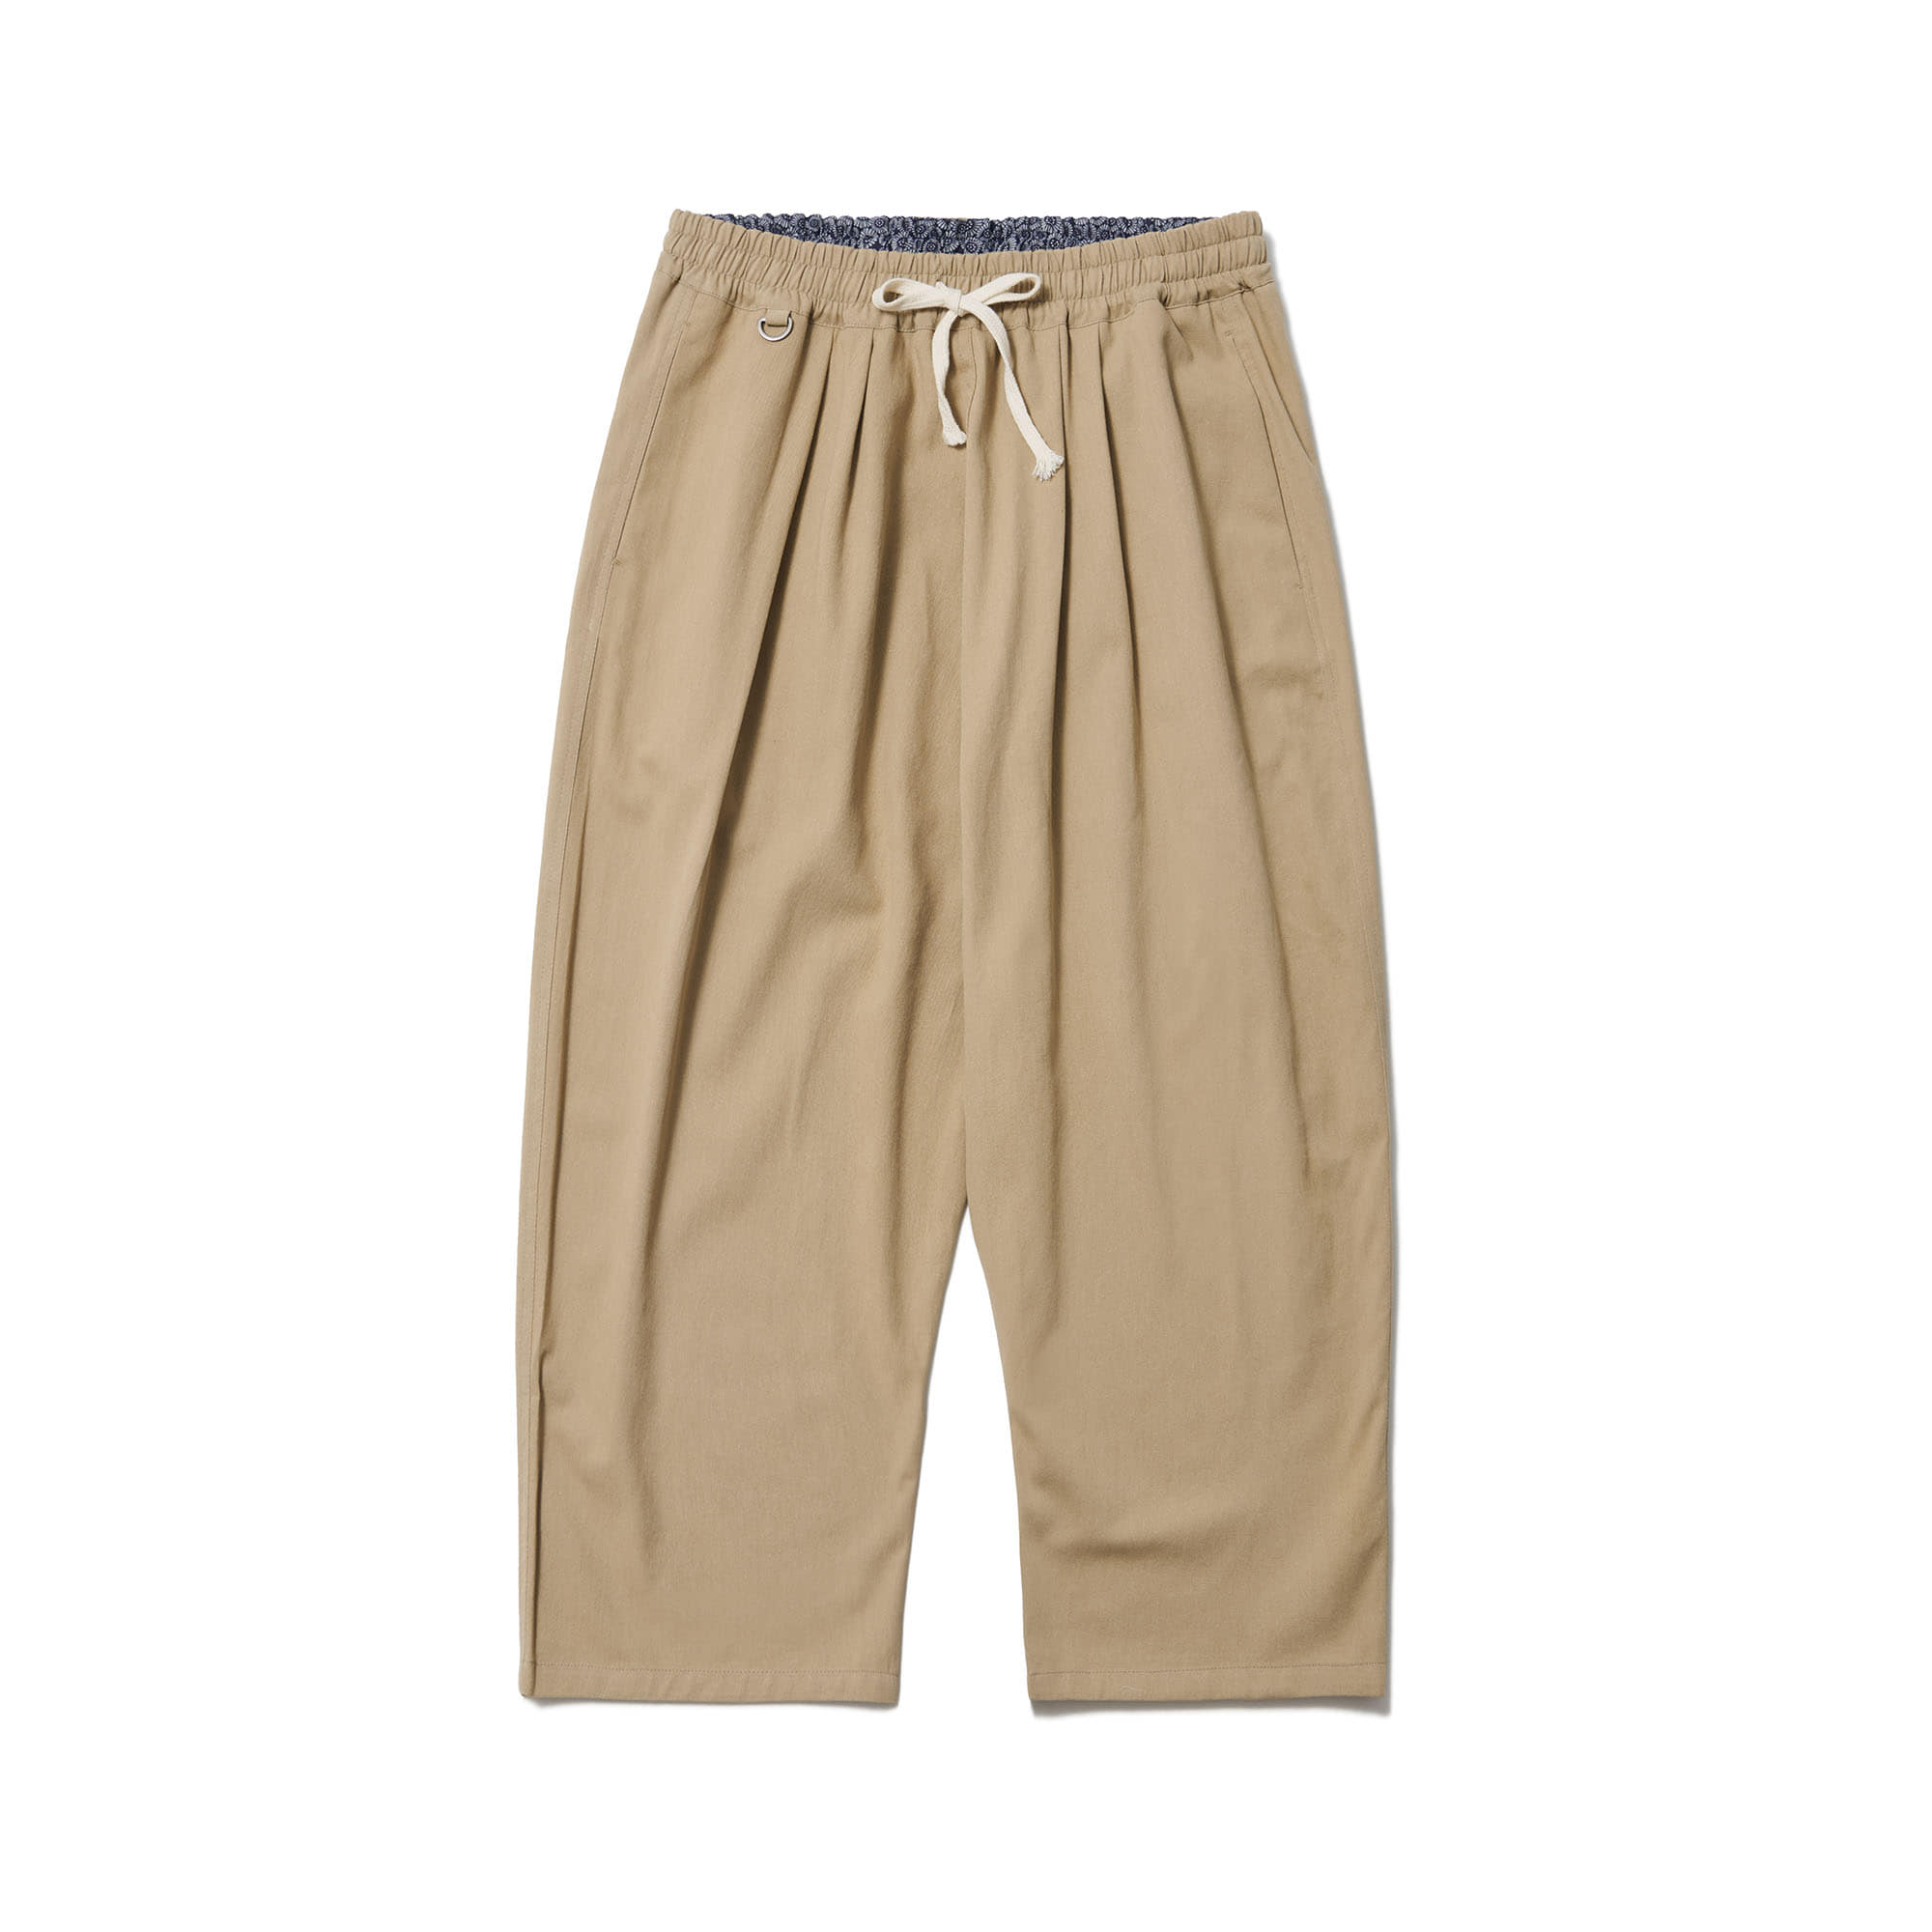 [Restock] Chino Long Capris Pants Beige